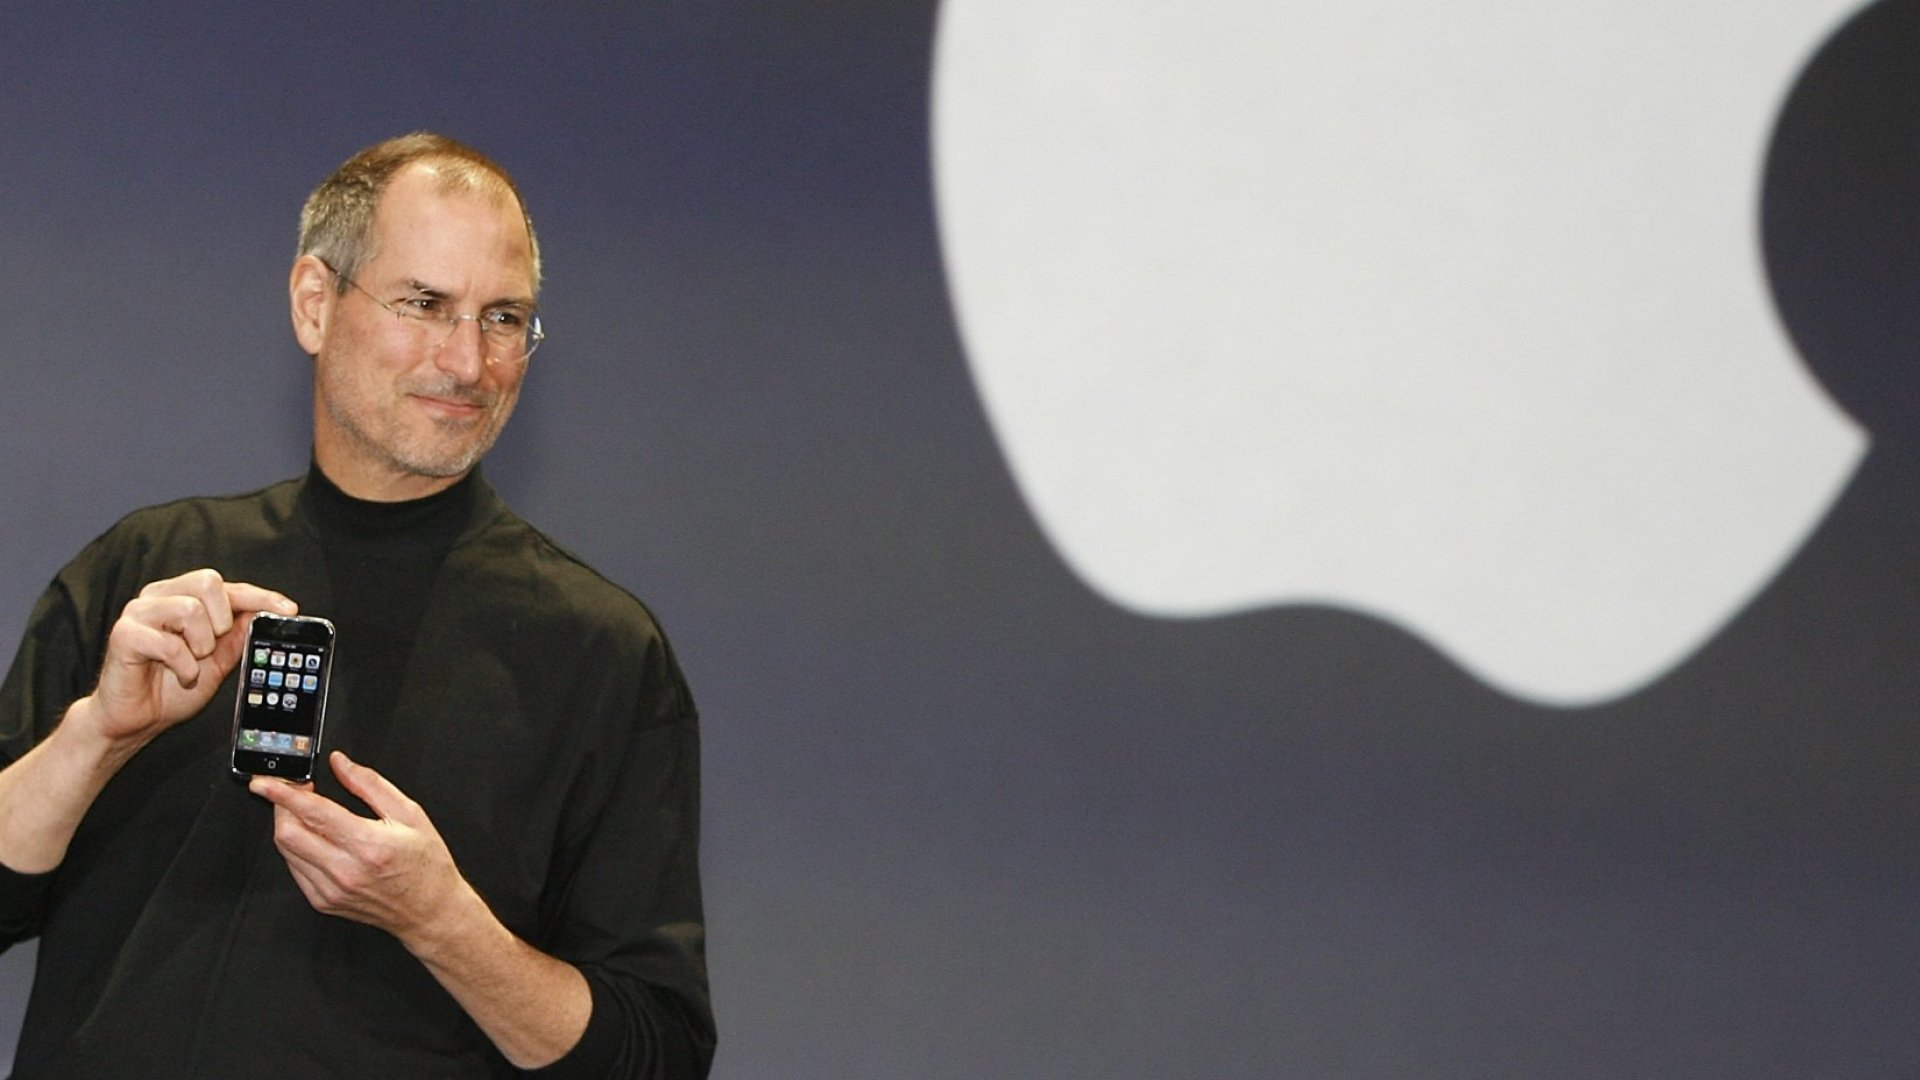 Steve Jobs unveils the first iPhone at the Macworld Conference in January 2007.